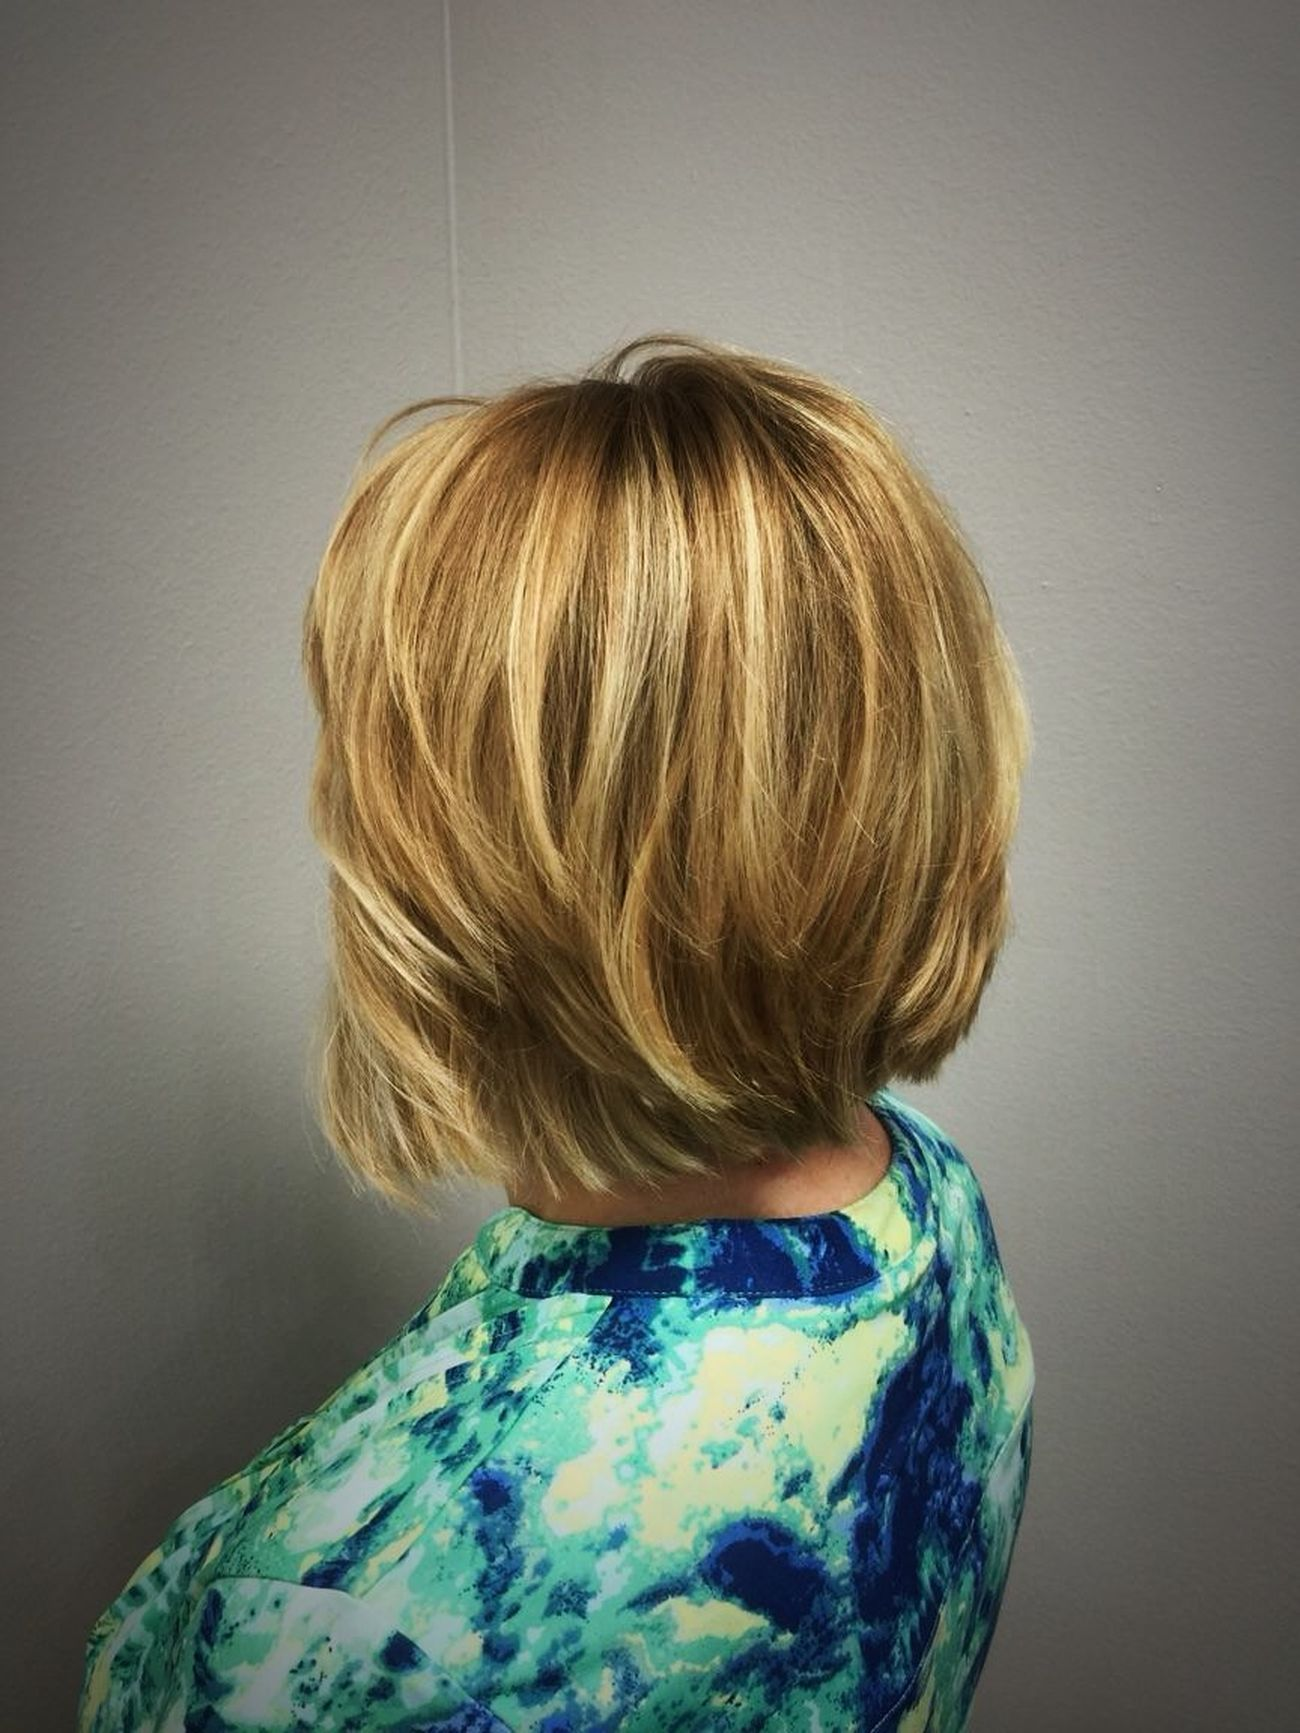 Beautiful color melting of Golden Blondes with a layered Bob with bangs @znevaehsalon Check This Out Hair TRENDING  L'Oreal Professionnel Z Nevaeh Salon Eye4photography # Photooftheday Tecni.art Hairtrends Haircolor Blonde